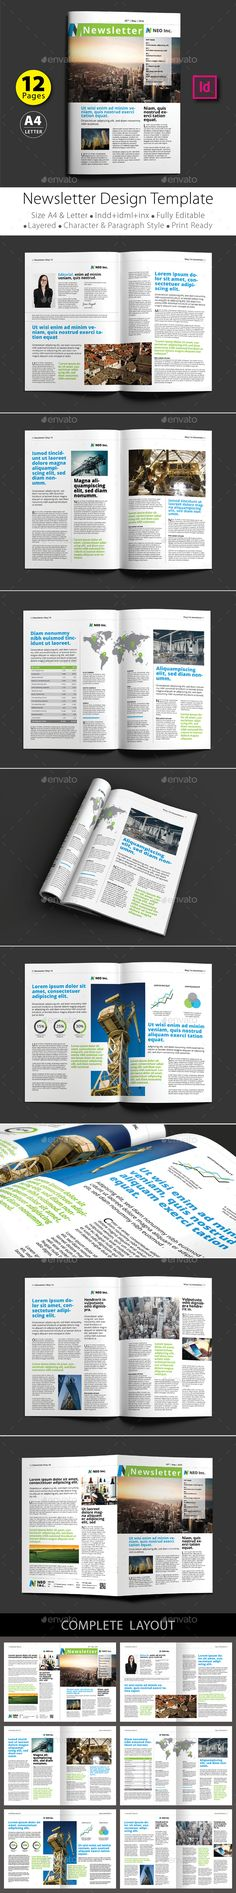 Business Newsletter Template Newsletter templates, Print - business newsletter